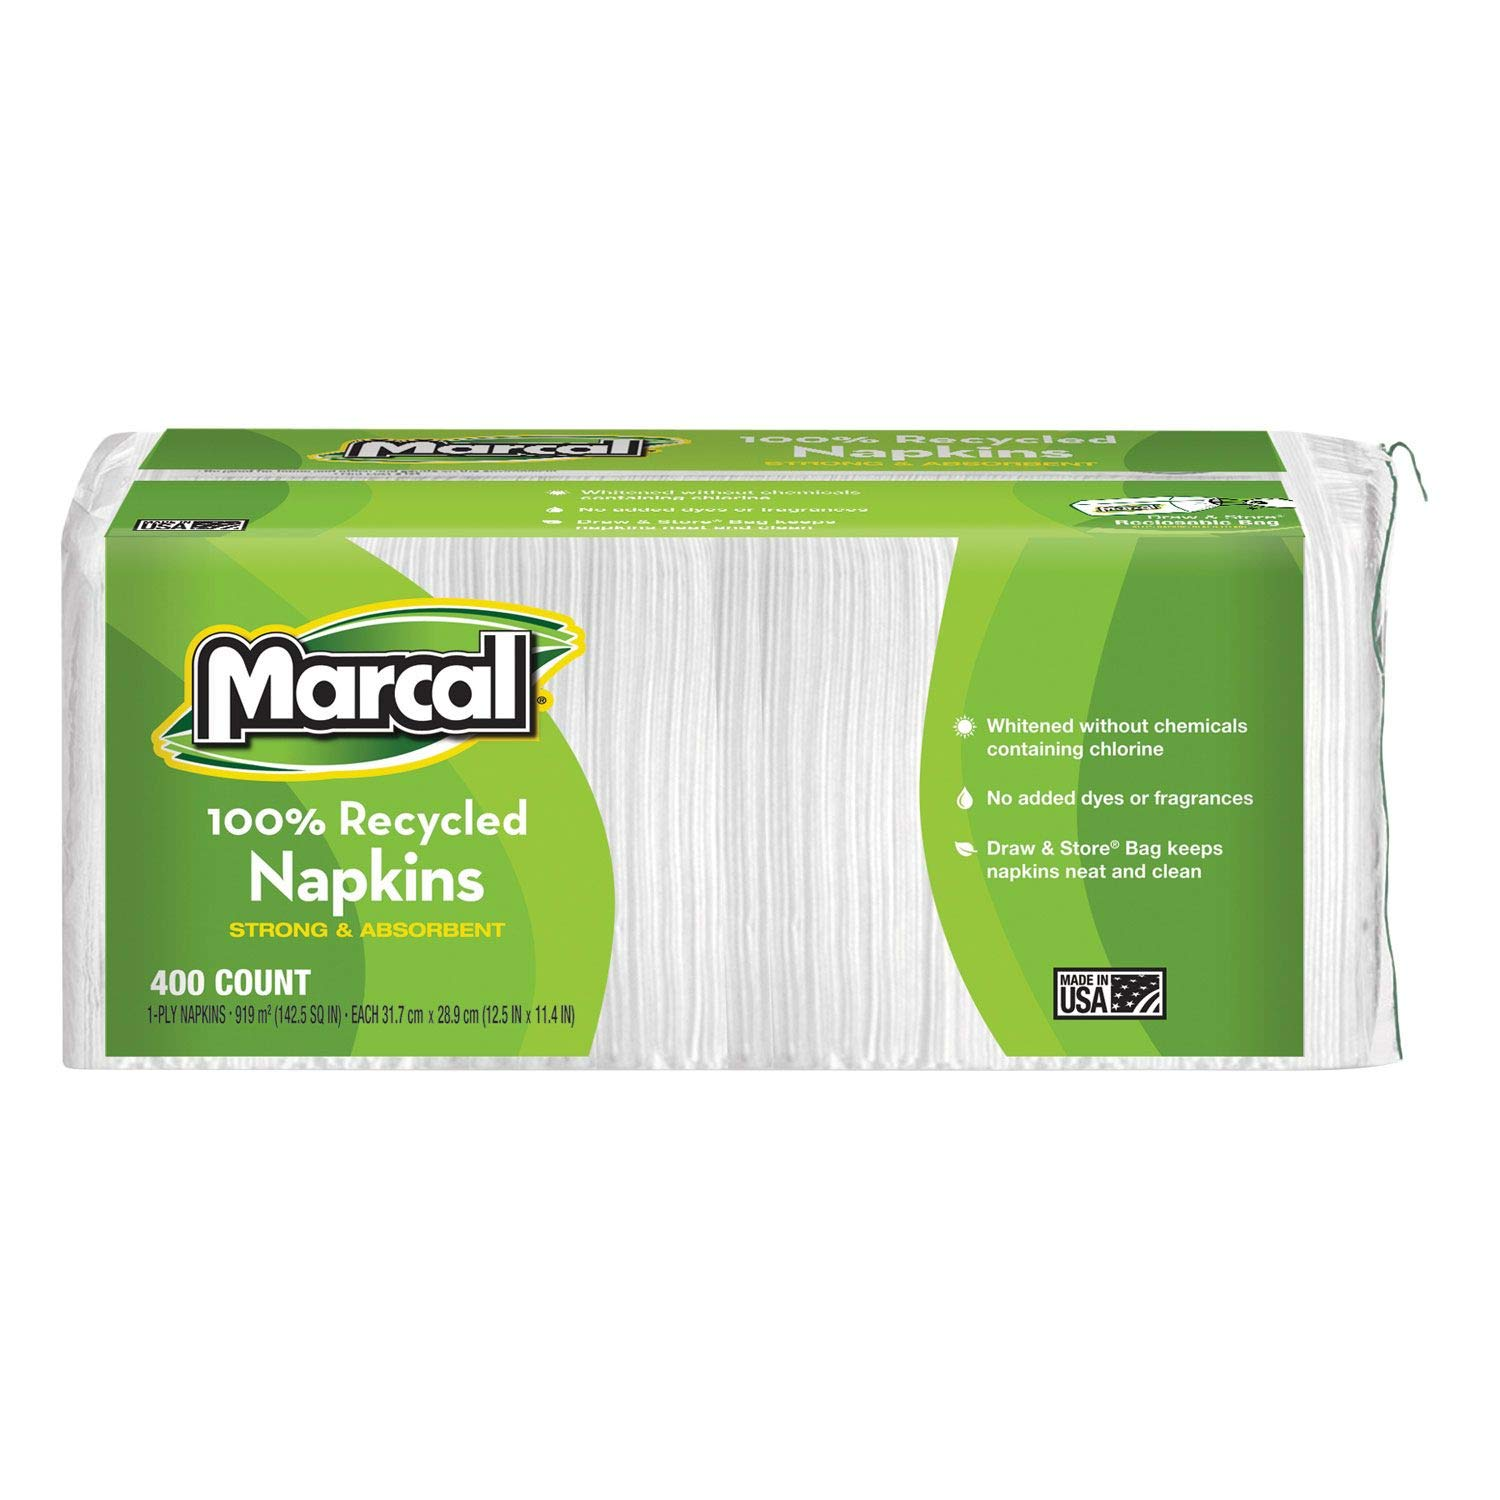 Marcal 100% Premium Recycled Luncheon Napkins - 6 pkgs./400 ct. each - 2,400 ct. total - 1 x 6 PACK